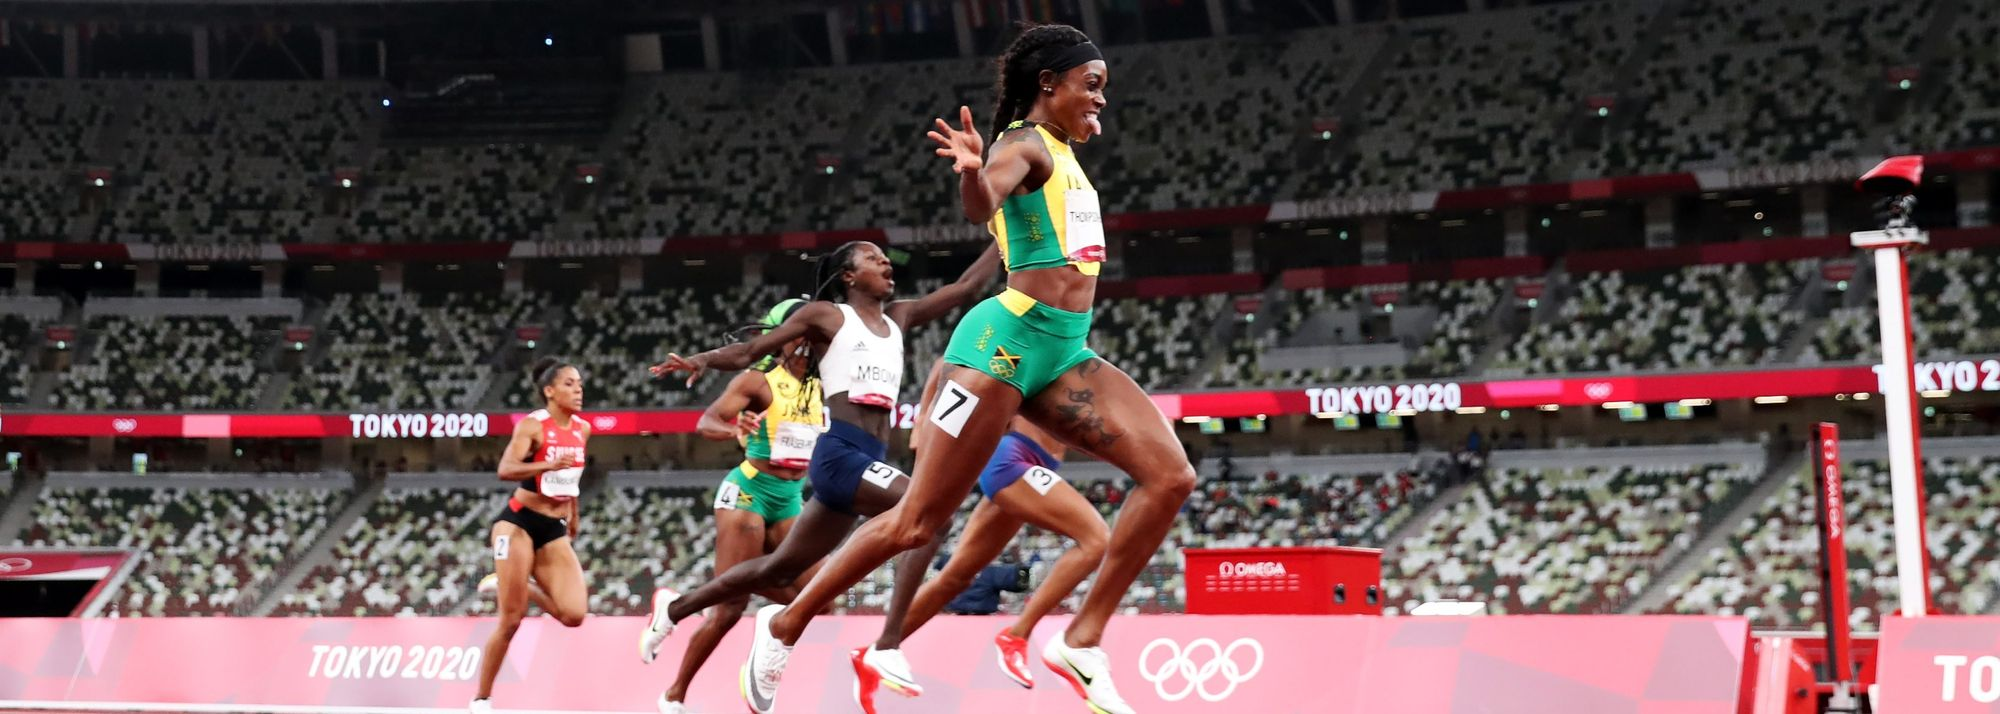 Elaine Thompson-Herah added another stunning performance to a day which will live long in the memory, becoming the first woman to ever complete a golden 100m and 200m 'double double' at the Olympics.